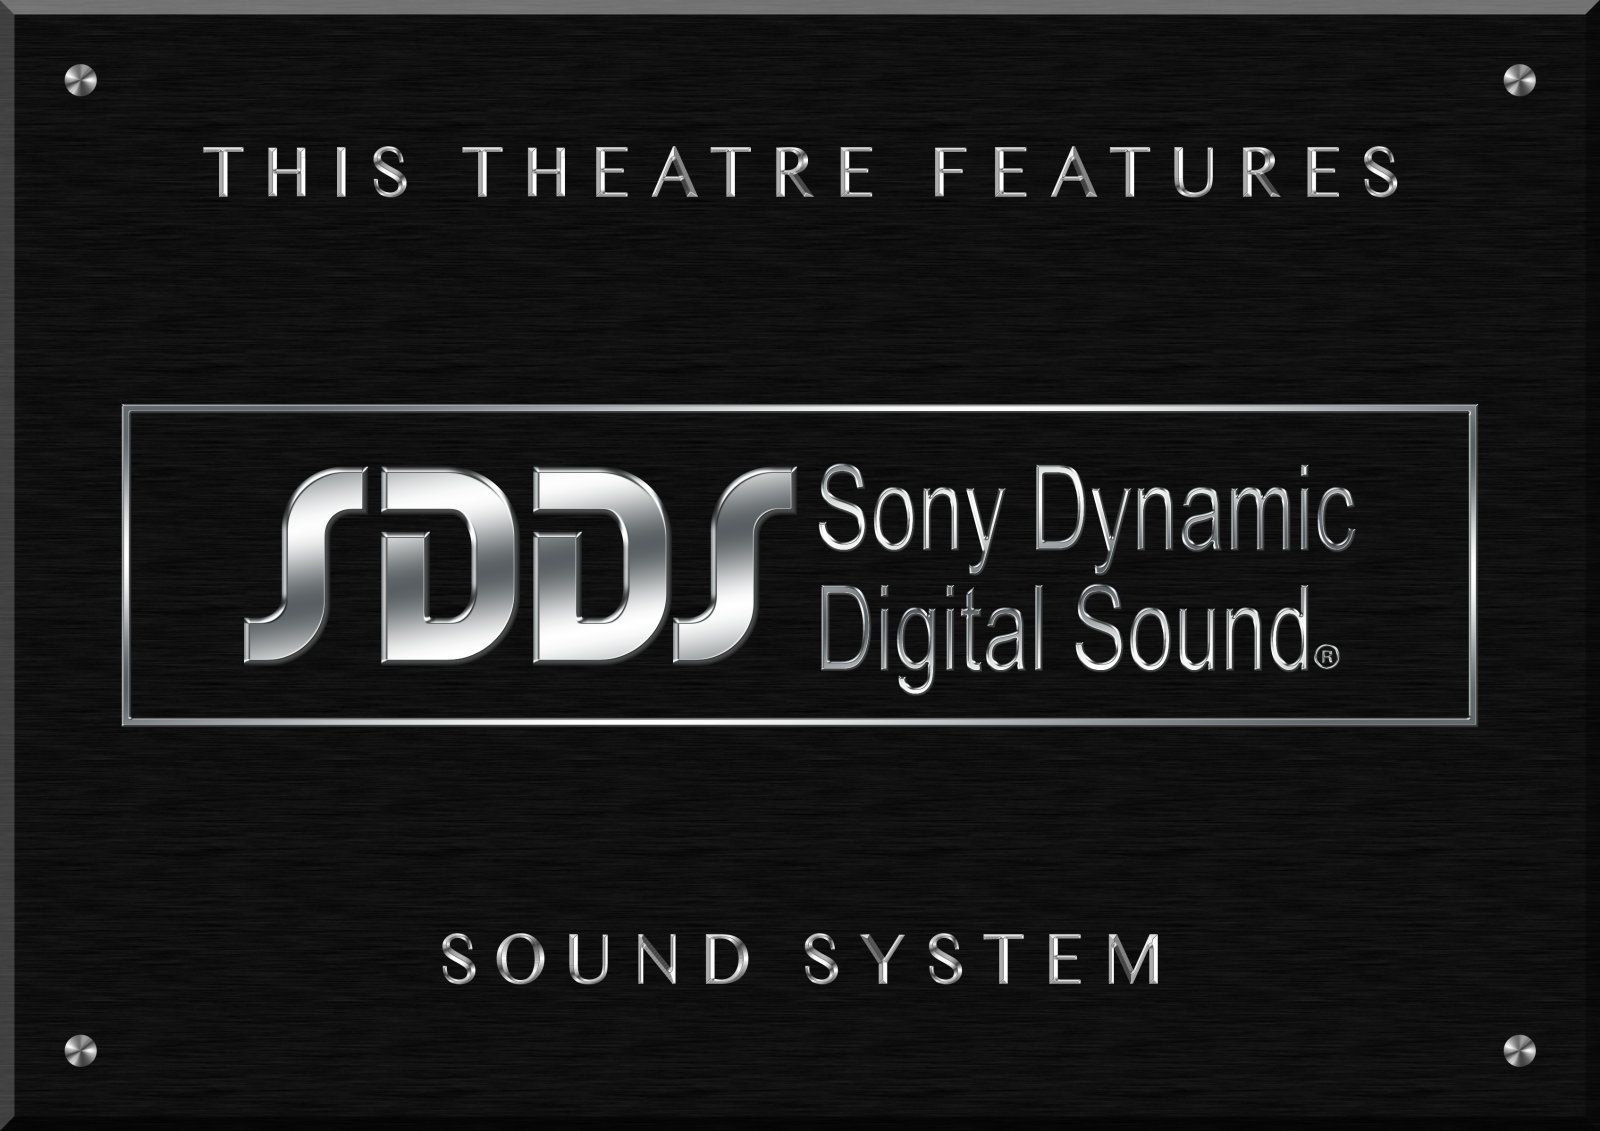 Sony Dynamic Digital Sound Selected Theatres Logo